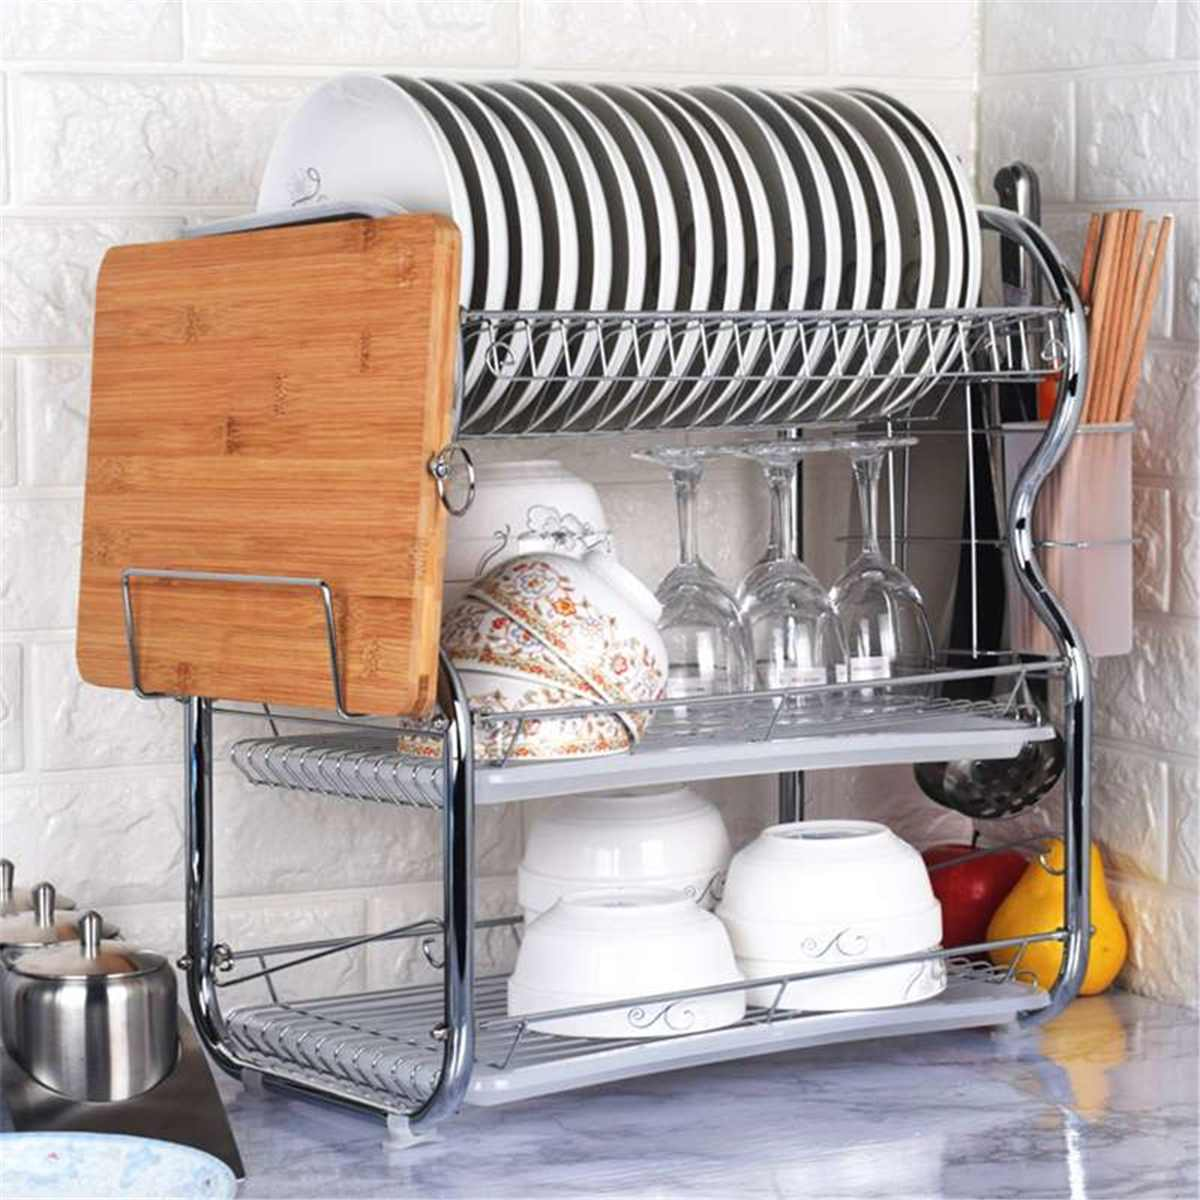 3 Layer Stainless Steel Cutlery Stand Shelf Cutlery Dish Rack Kitchen Dish Storage Rack Drain Storage Rack Knife Holder New